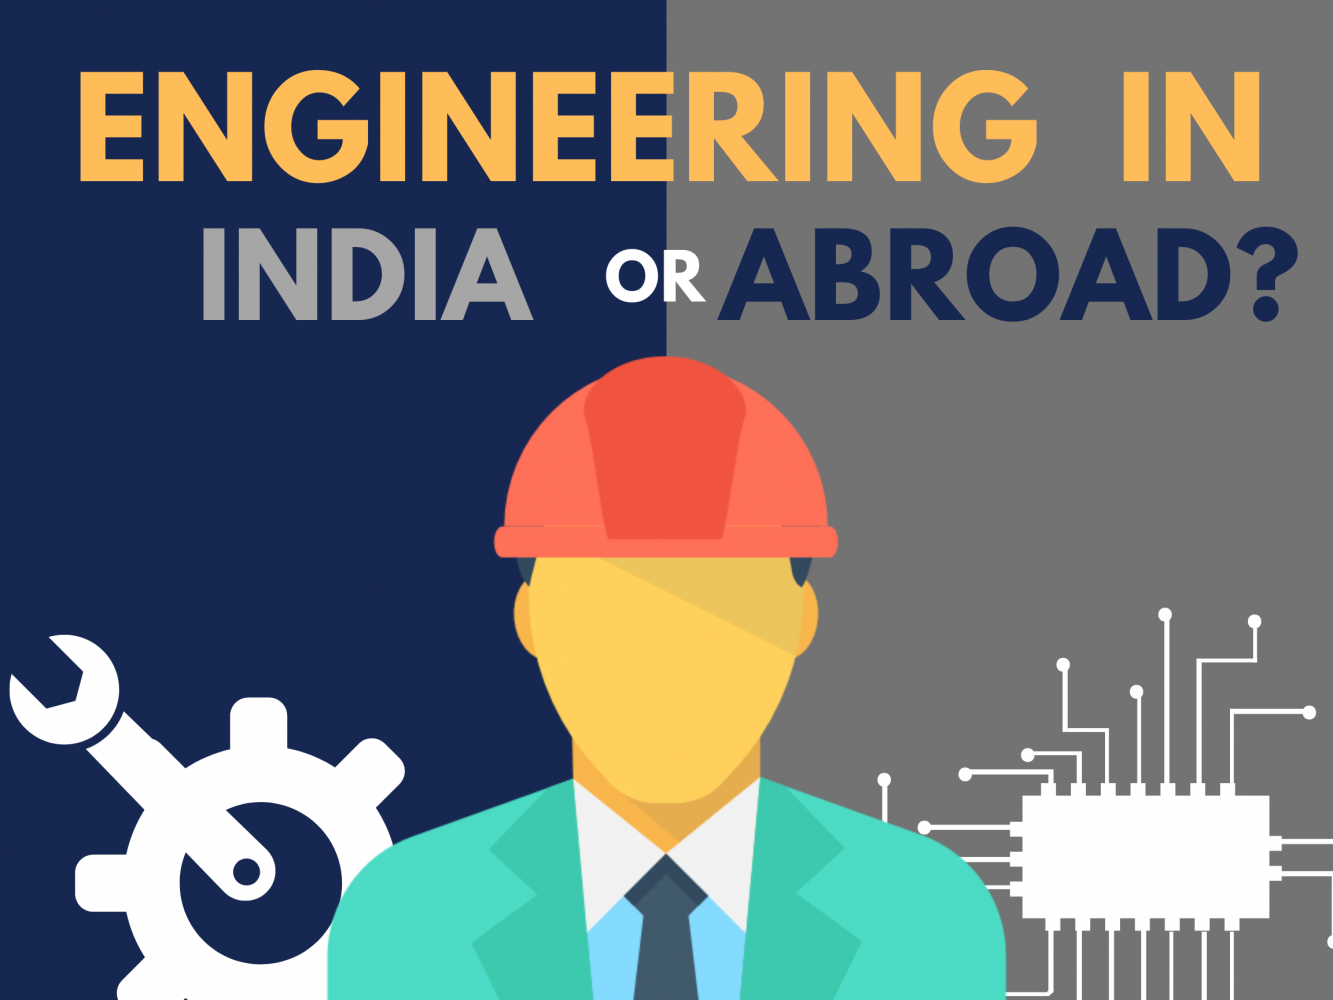 Top 4 things to consider before pursuing Engineering in India or Abroad